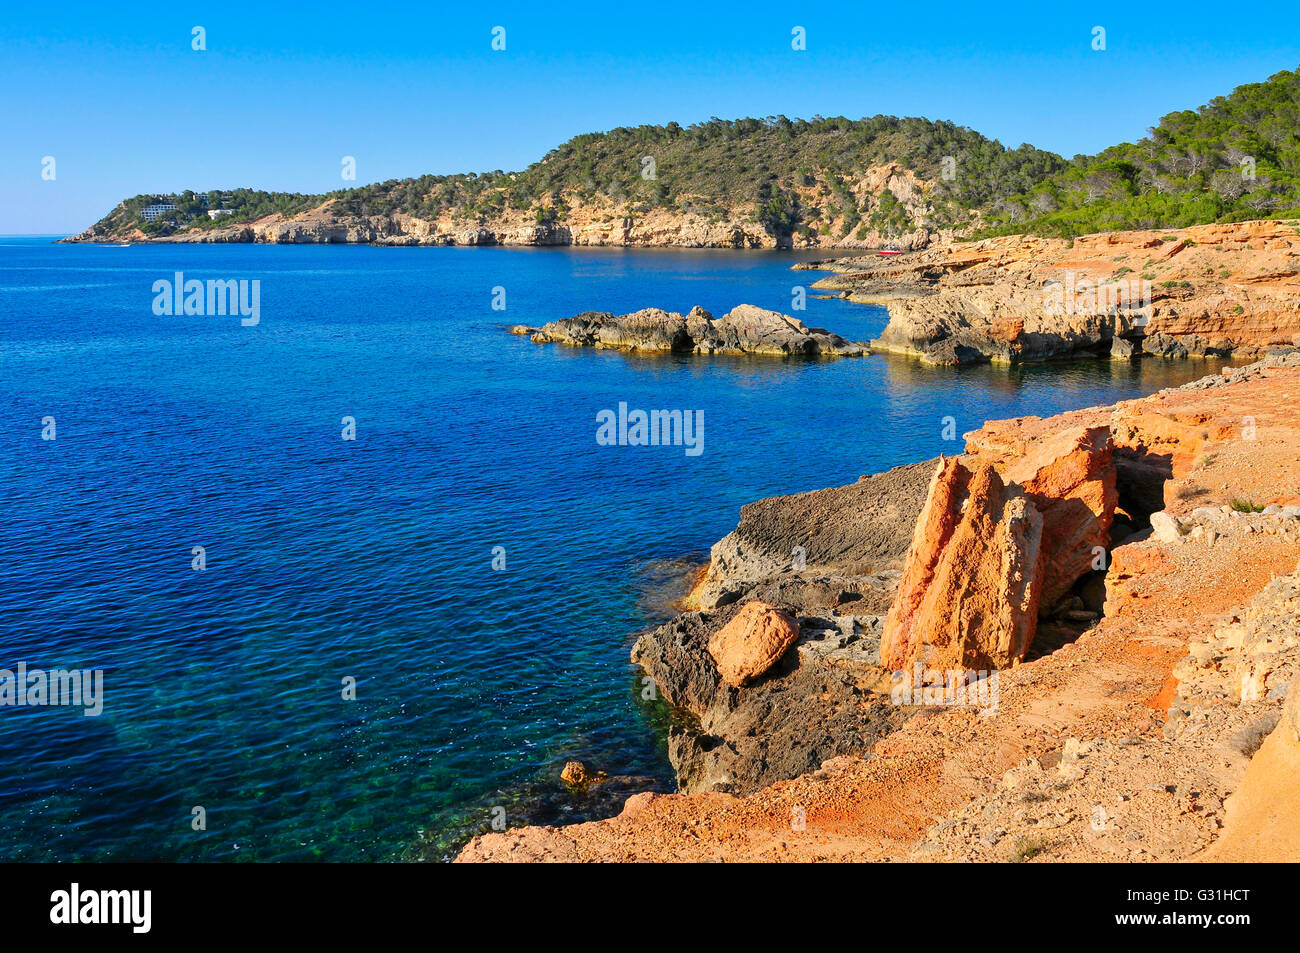 a view of the Mediterranean Sea and a cliffy landscape of the northeastern coast of Ibiza Island, in the Balearic - Stock Image